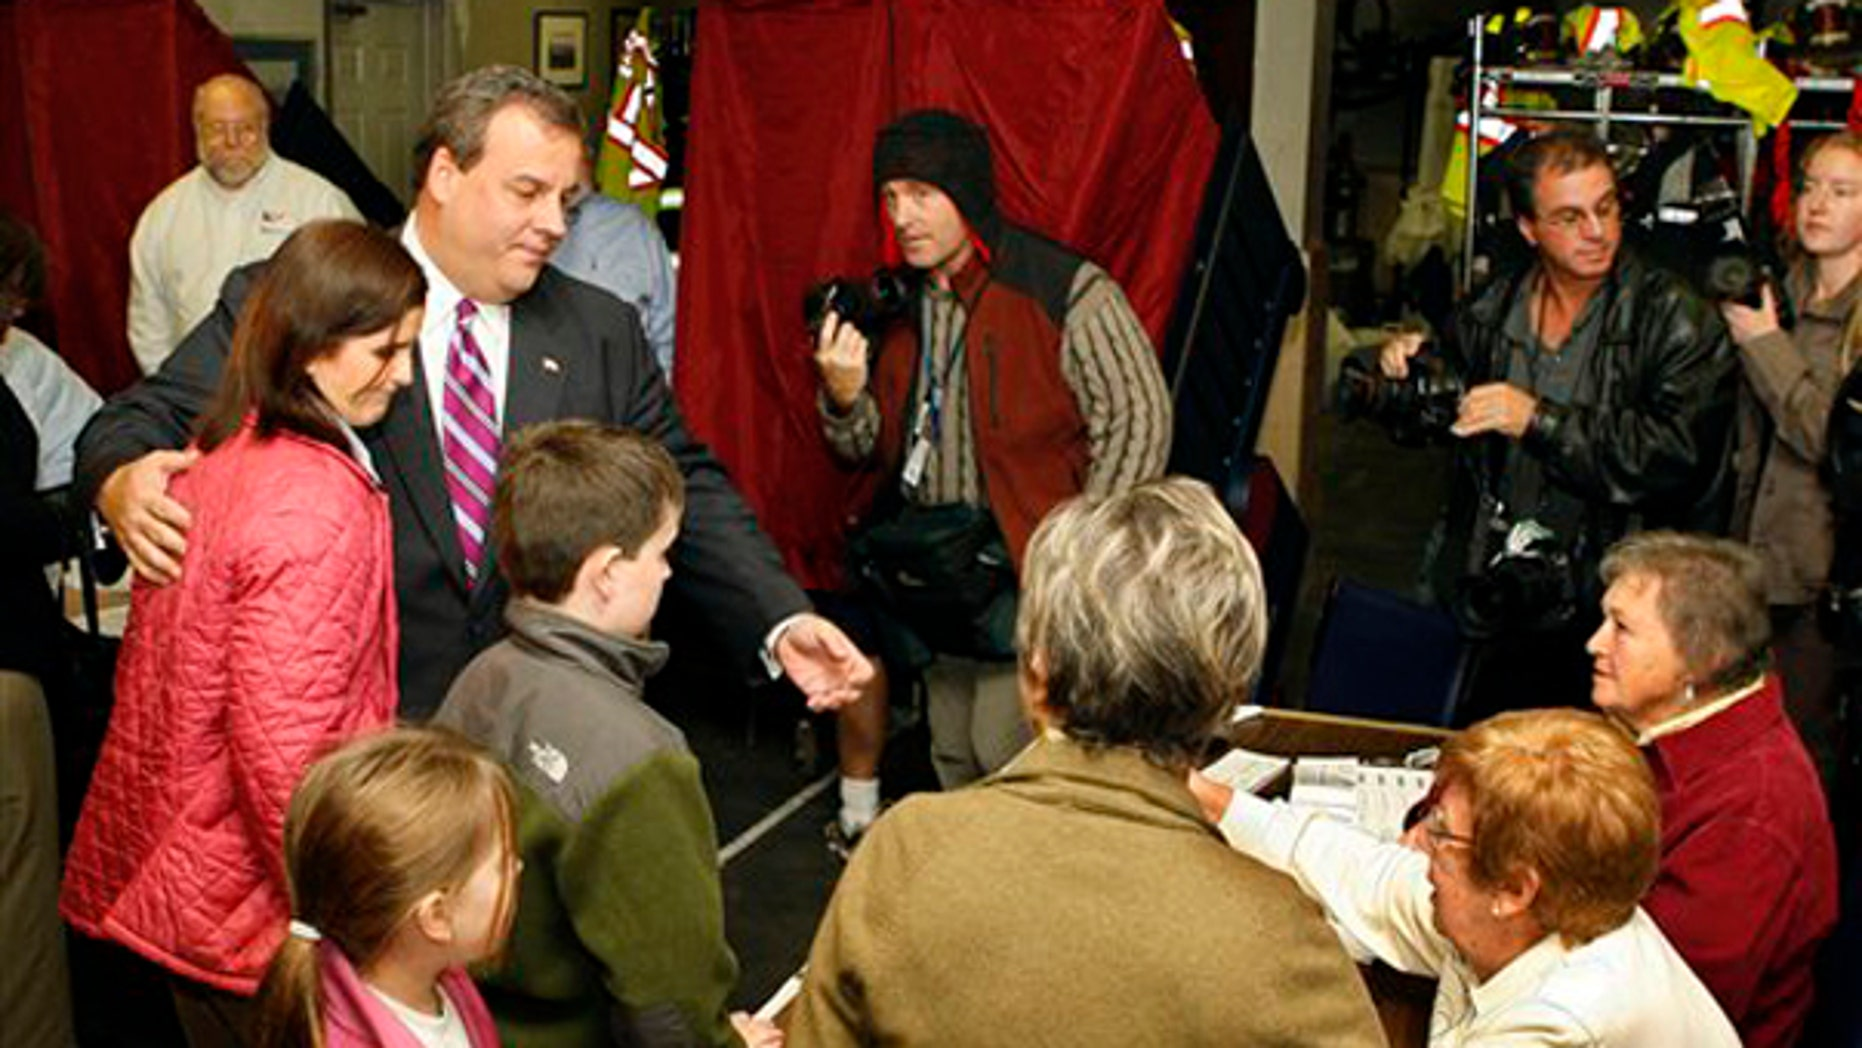 Tuesday: Chris Christie stands with wife Mary Pat Christie and children Bridgett and Patrick ahead of their voting in Mendham, N.J. (AP Photo)